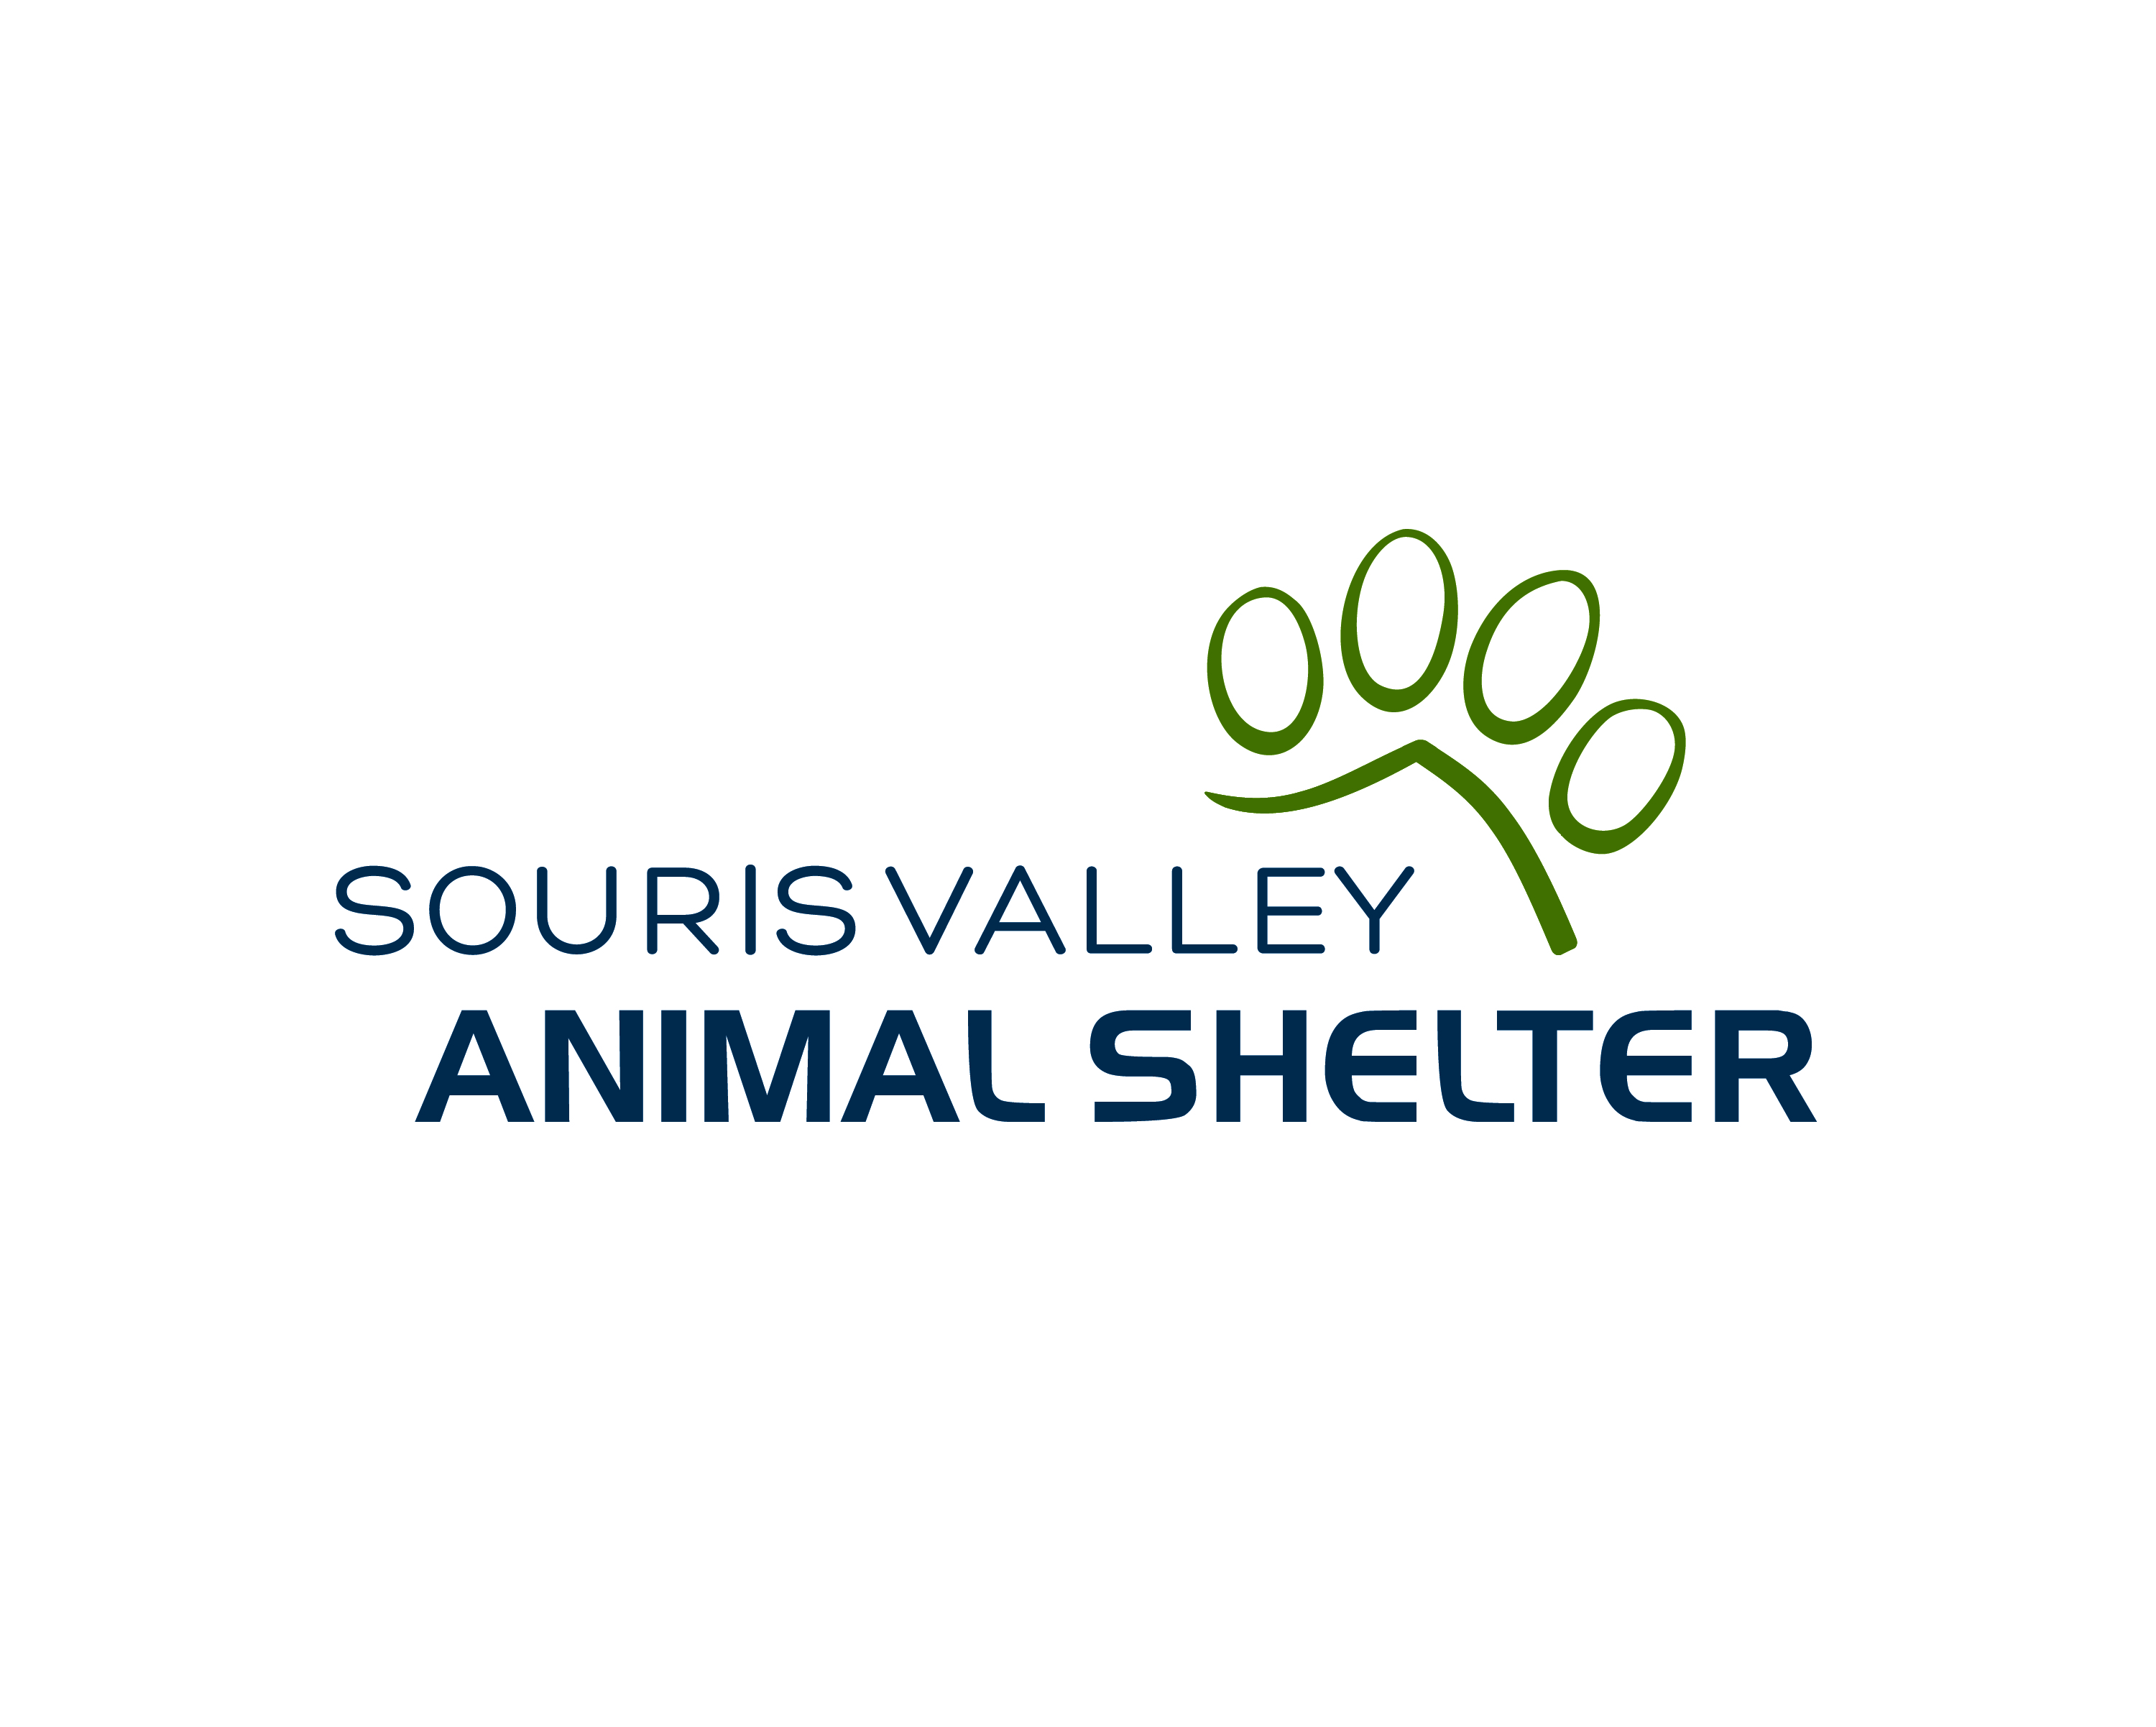 Souris Valley Animal Shelter